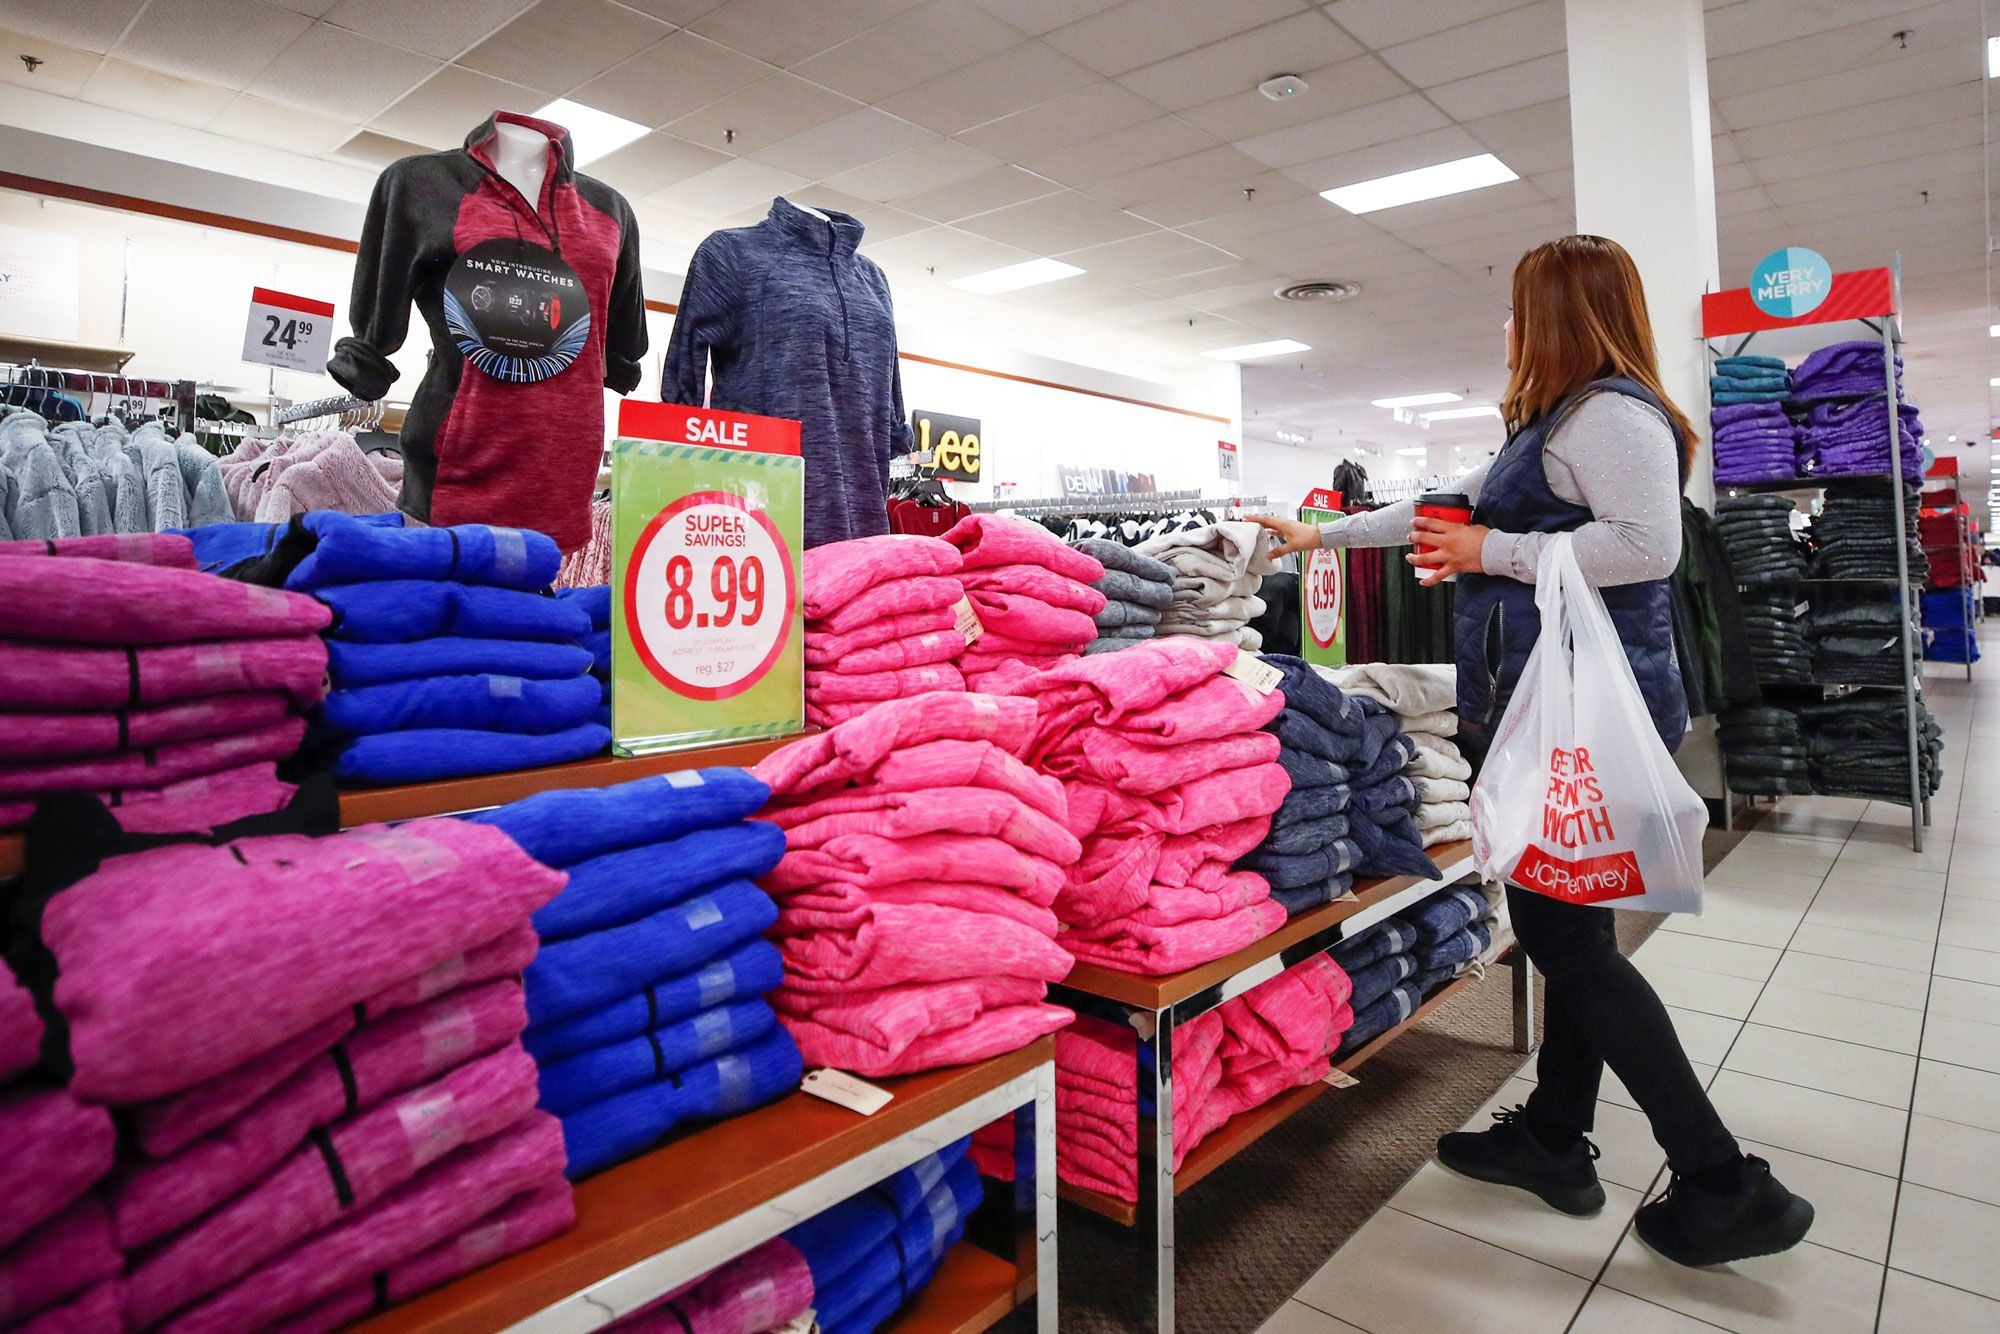 Department stores need reinvention, not touch-ups